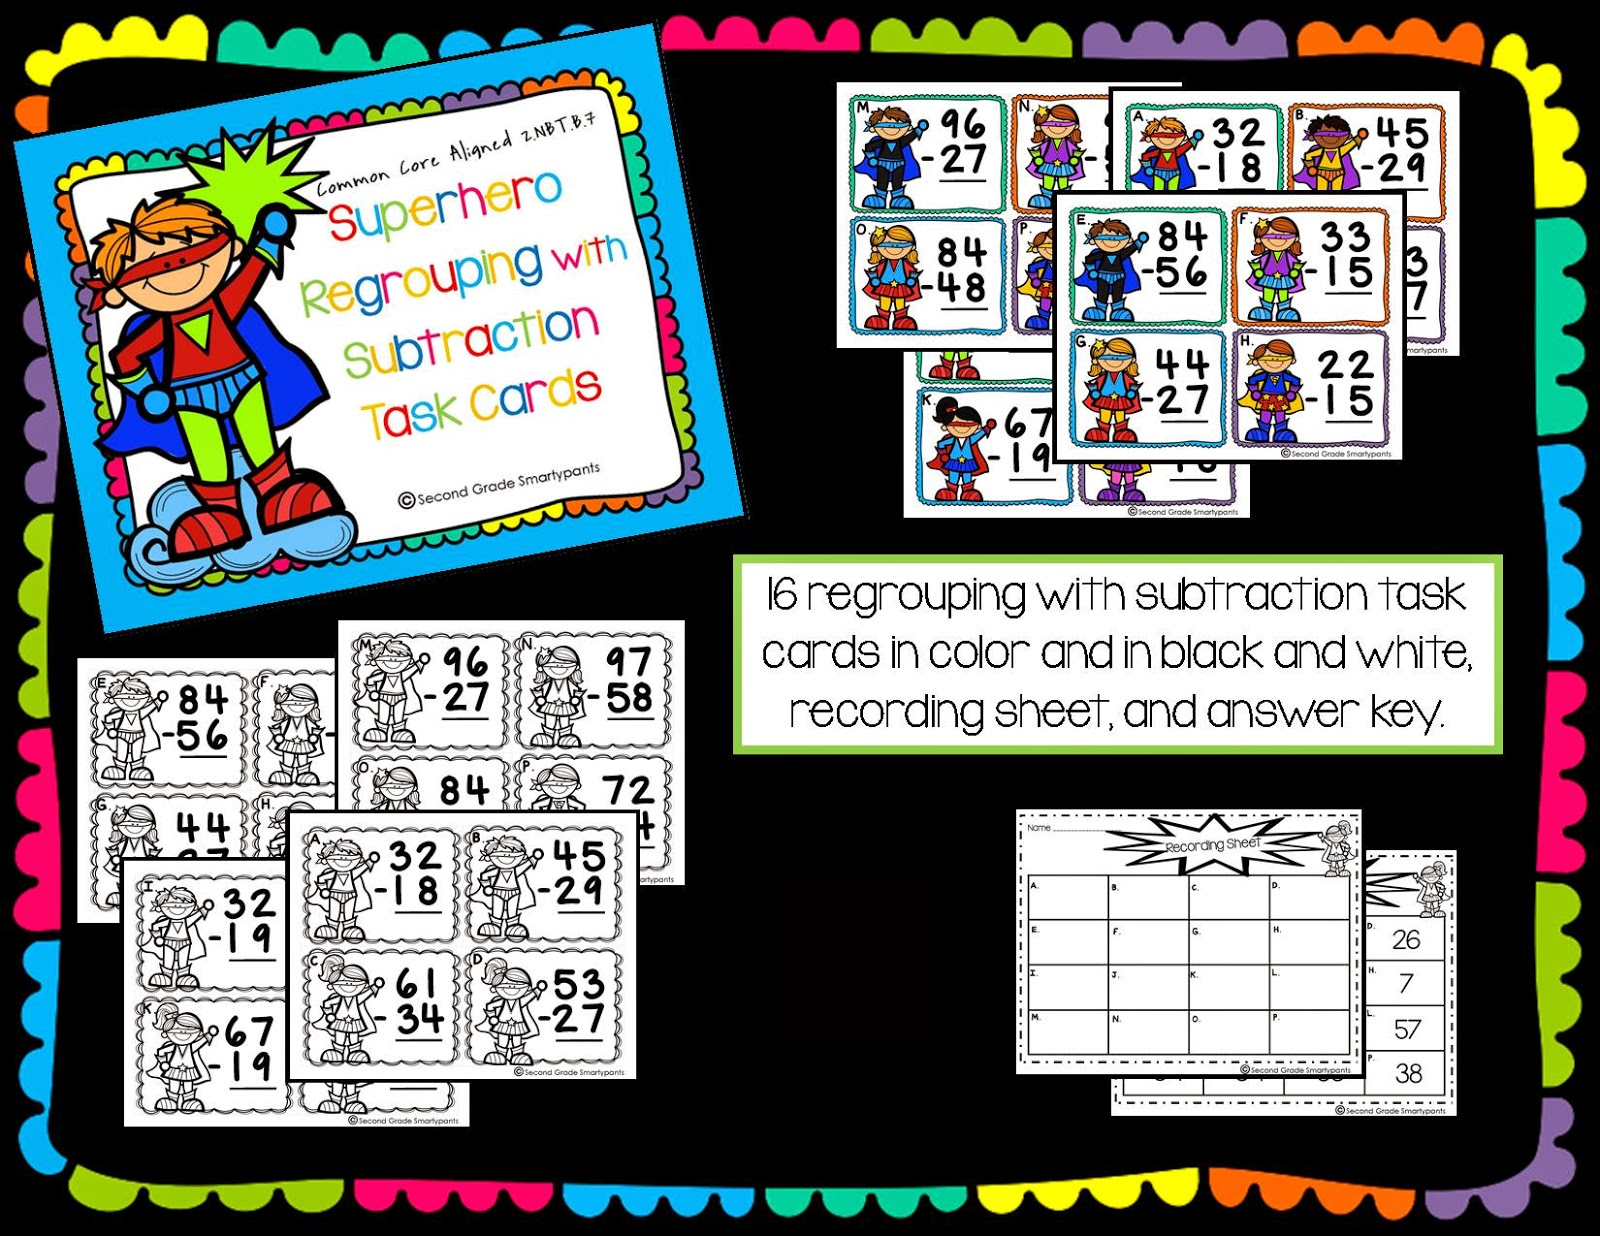 http://www.teacherspayteachers.com/Product/Superhero-Regrouping-with-Subtraction-Task-Cards-1051406